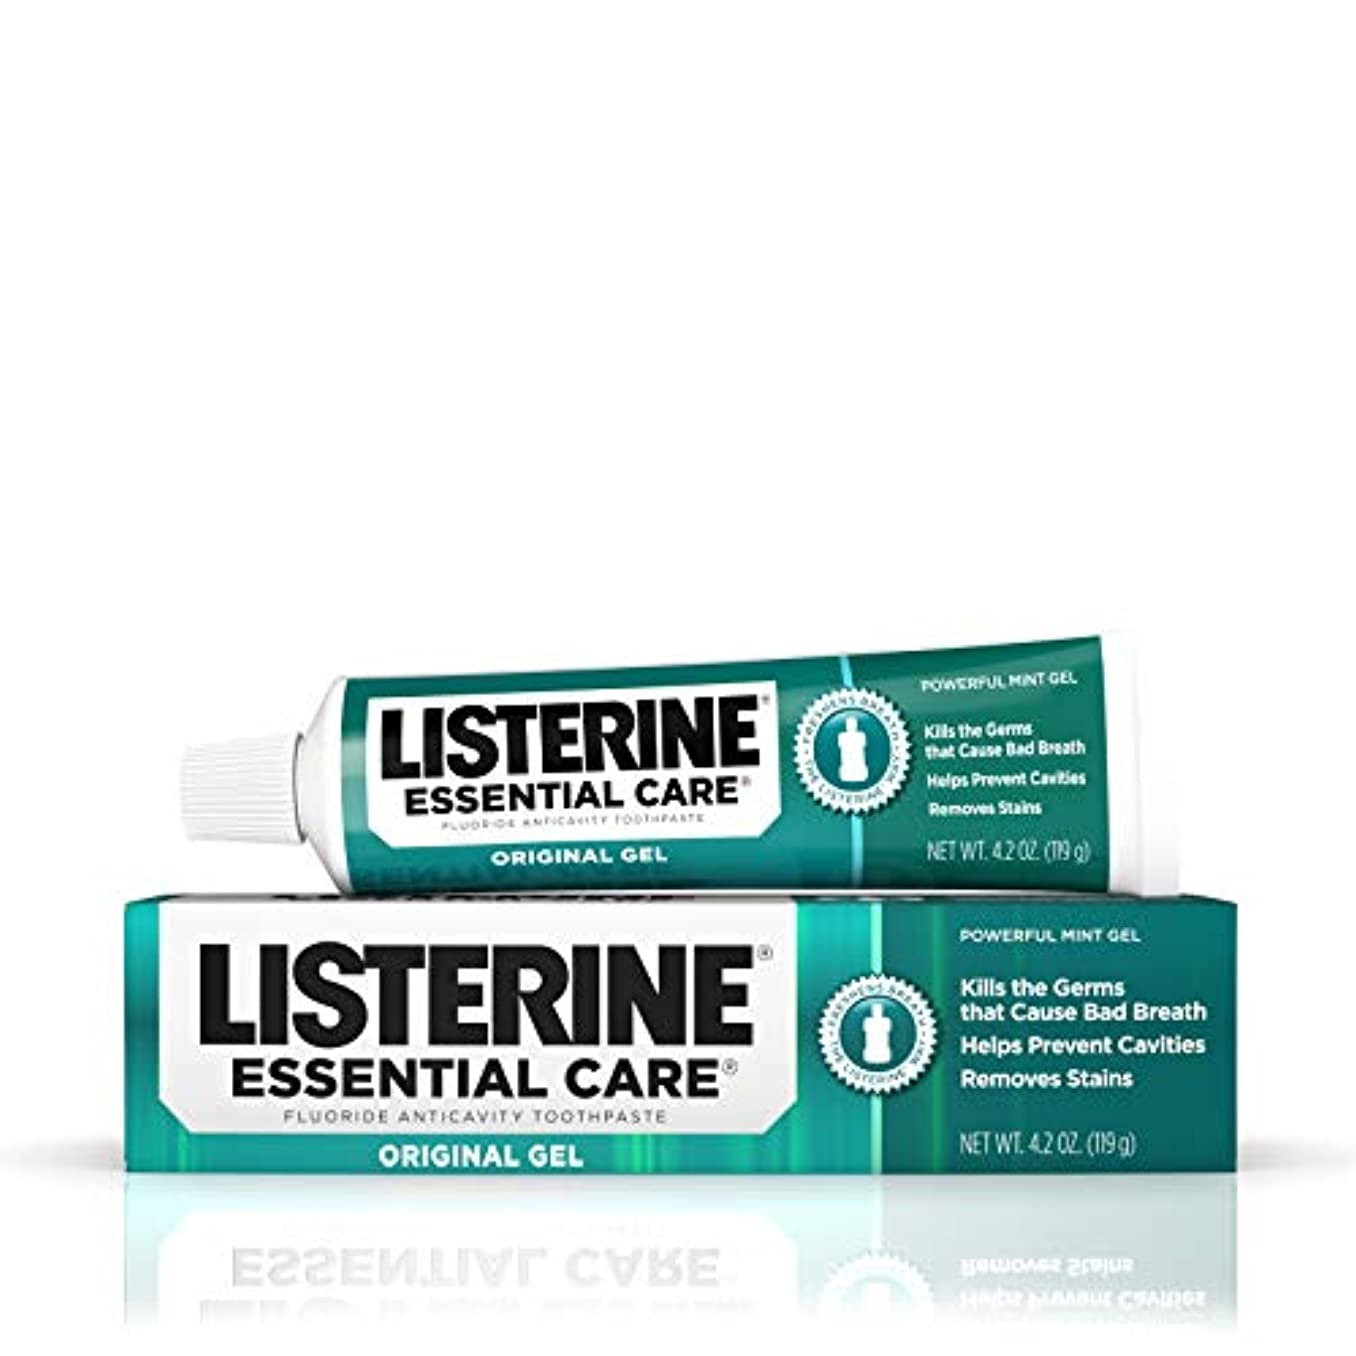 一節余暇失われた海外直送品Listerine Essential Care Toothpaste Gel Original, Powerful Mint 4.2 oz by Listerine